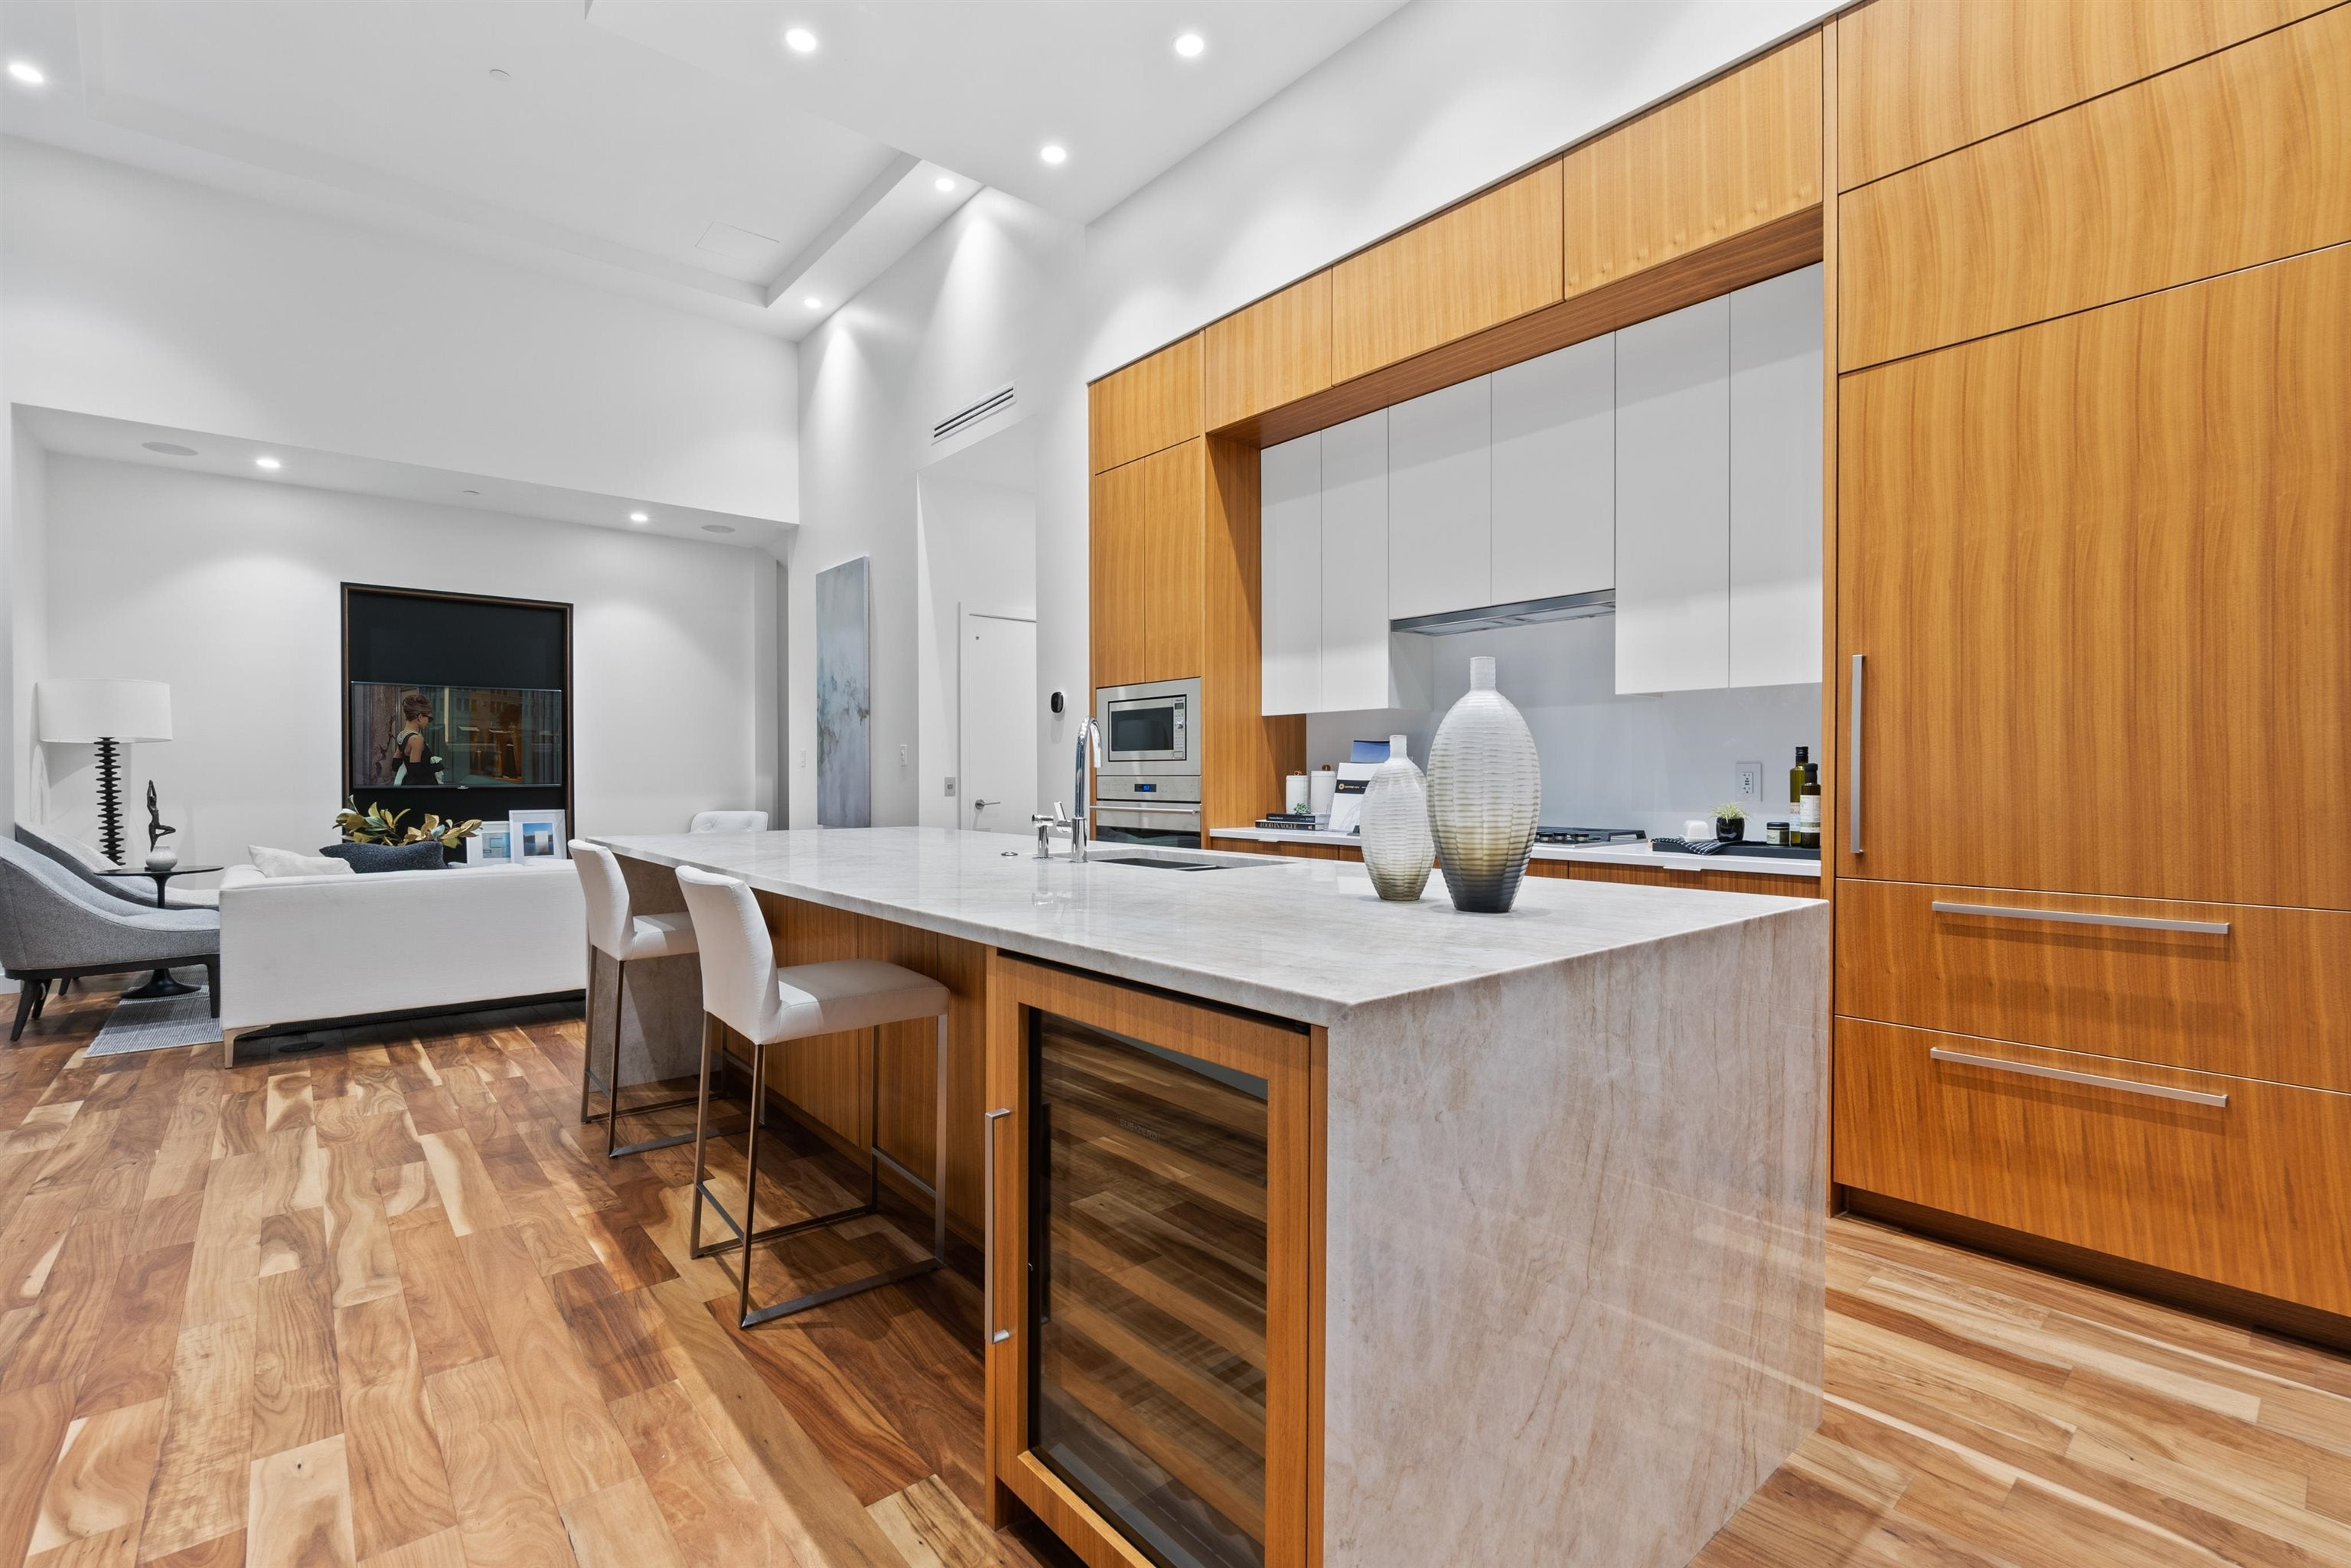 2402 125 E 14TH STREET - Central Lonsdale Apartment/Condo for sale, 2 Bedrooms (R2617870) - #10